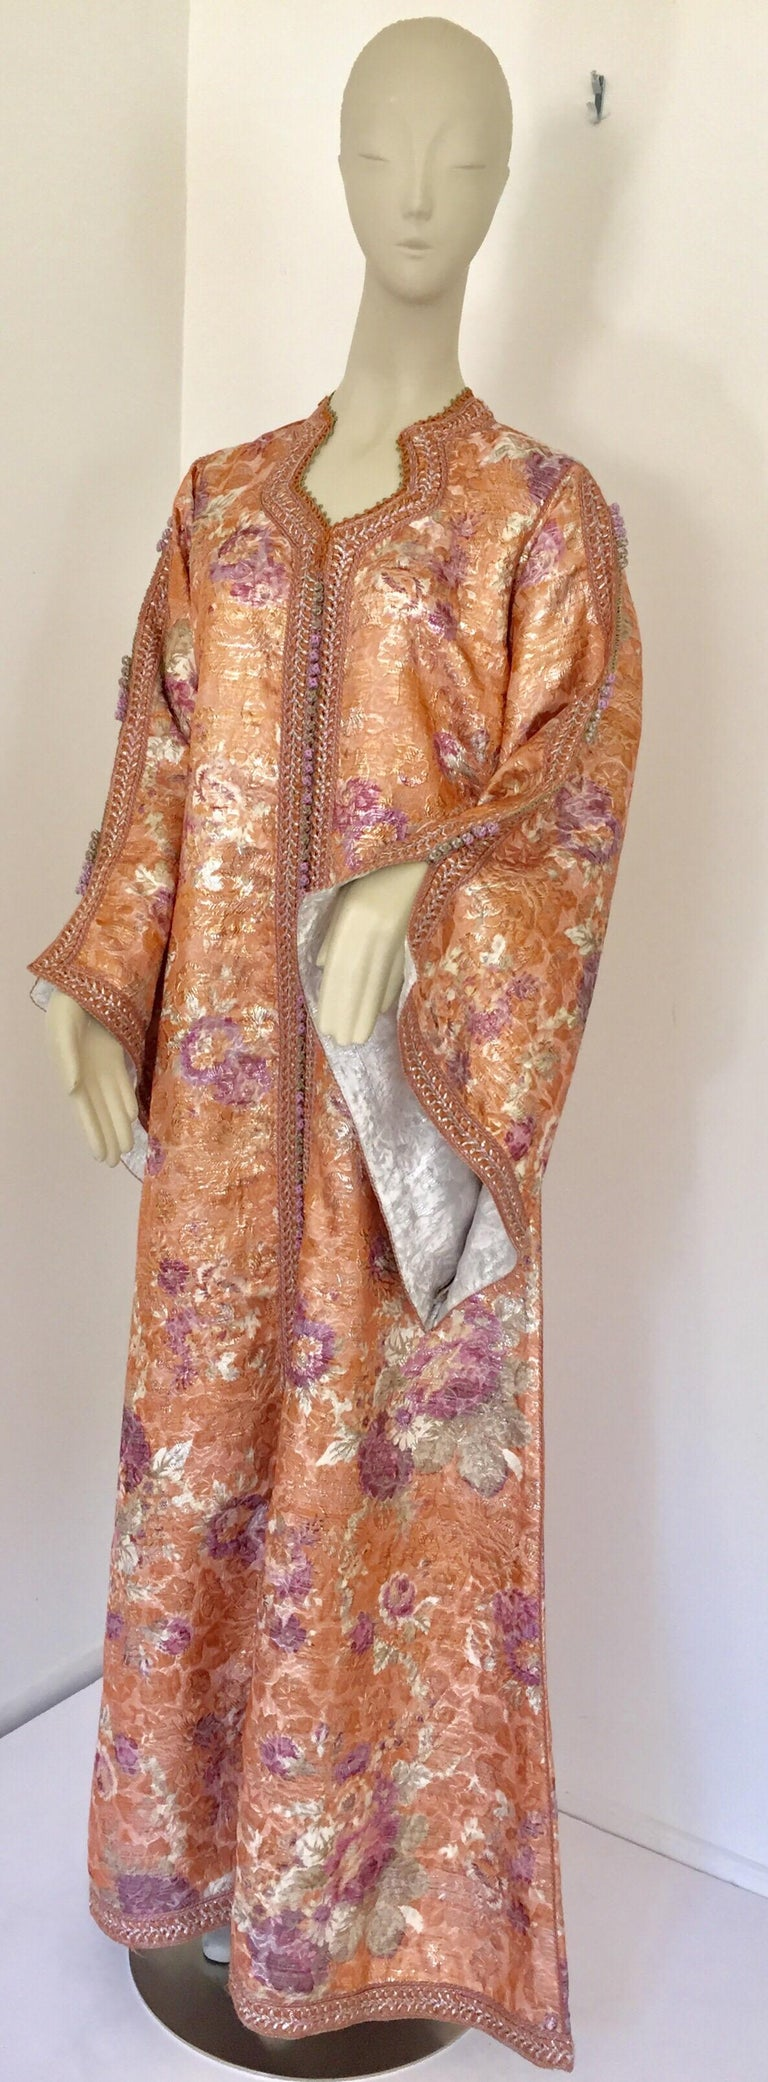 Moroccan Kaftan Orange and Purple Floral with Gold Embroidered Maxi Dress Caftan For Sale 4